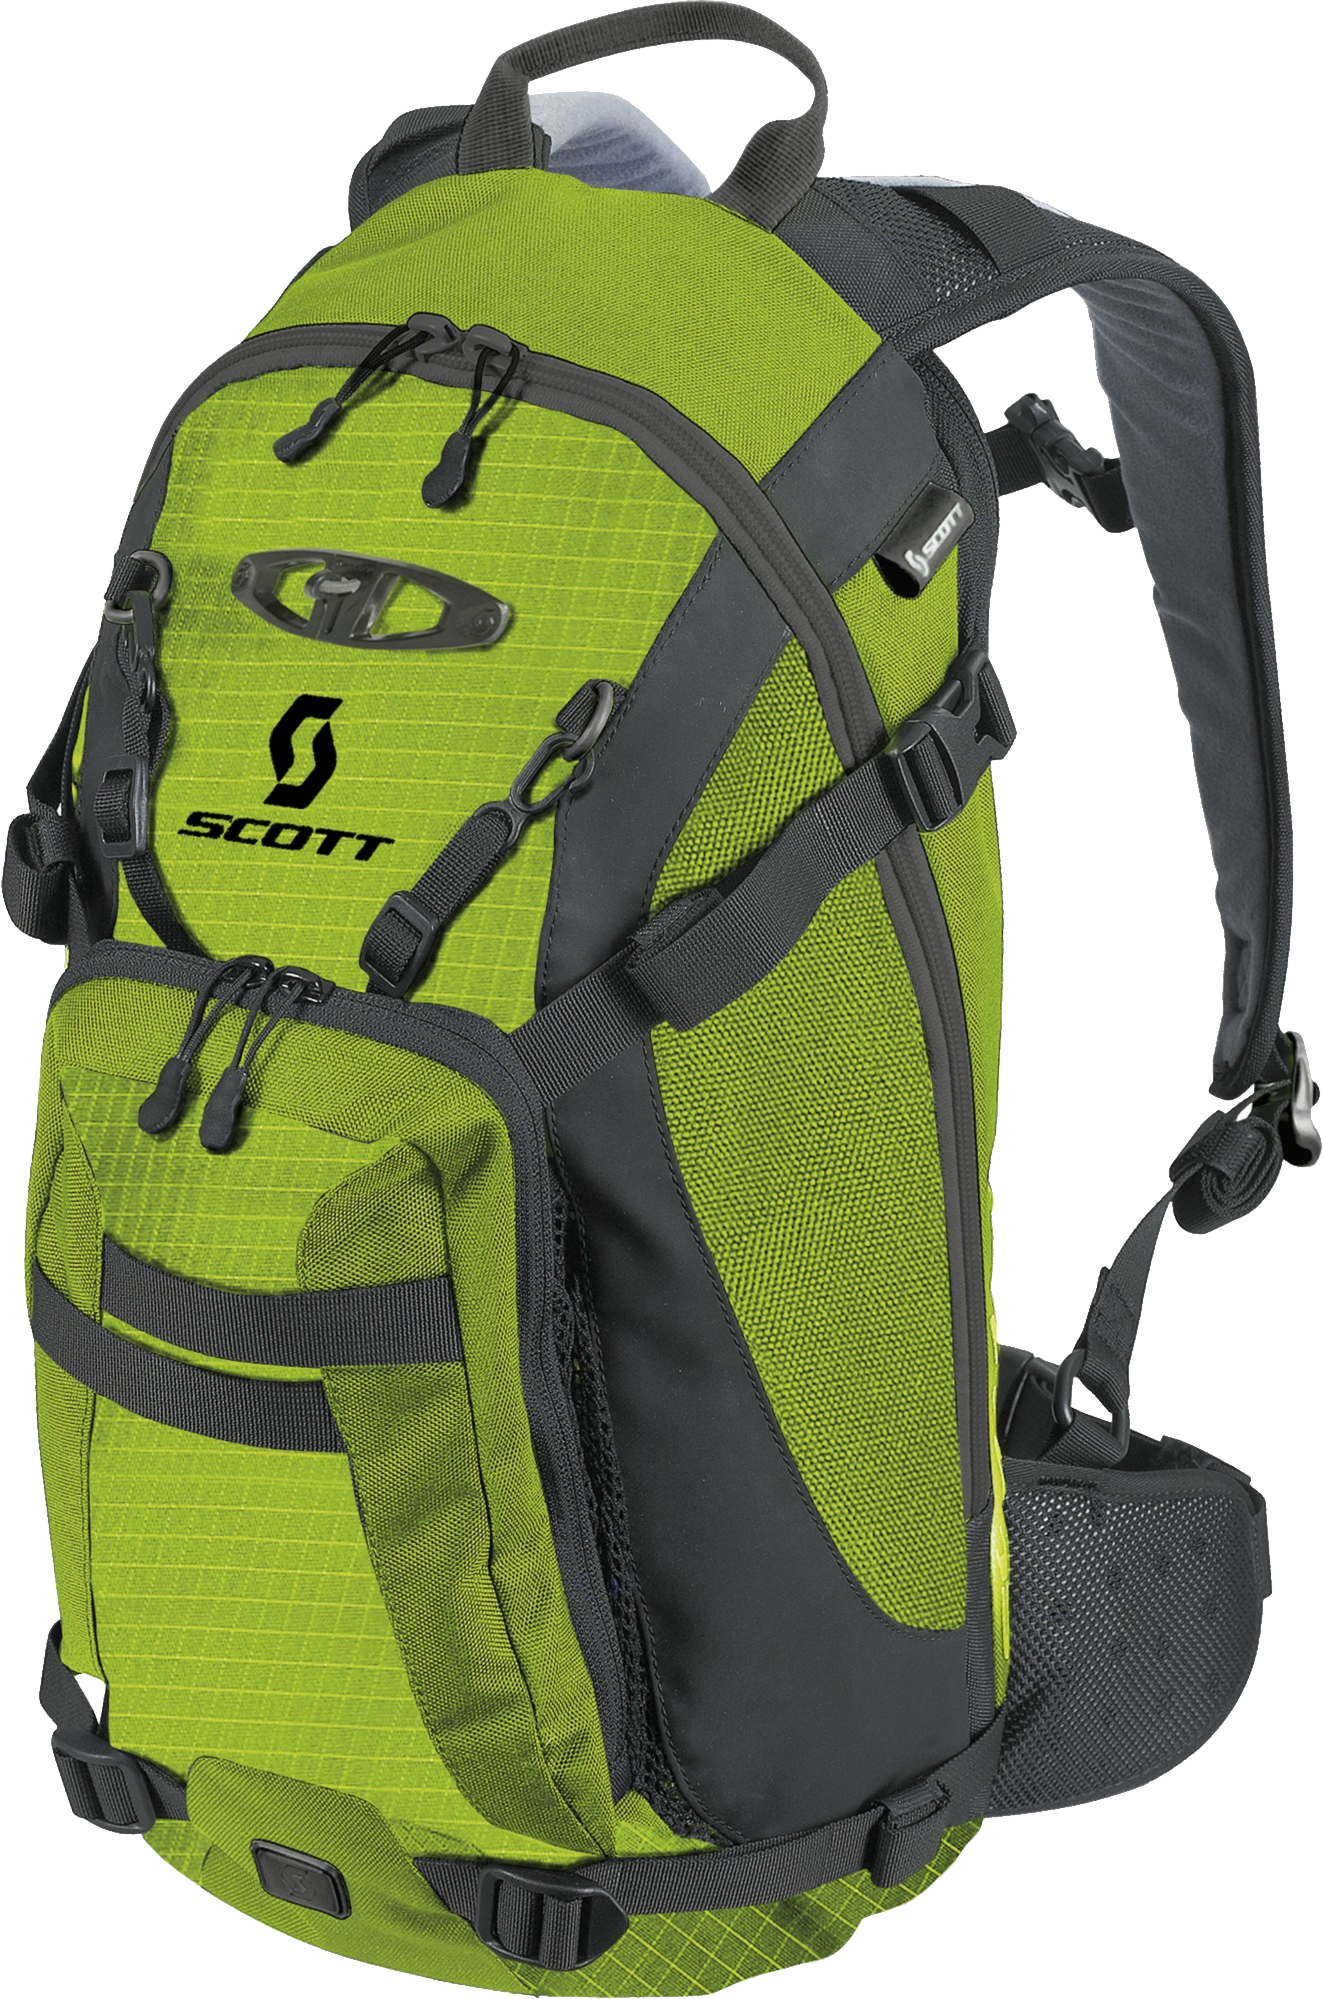 Backpack Outdoor PNG Image.